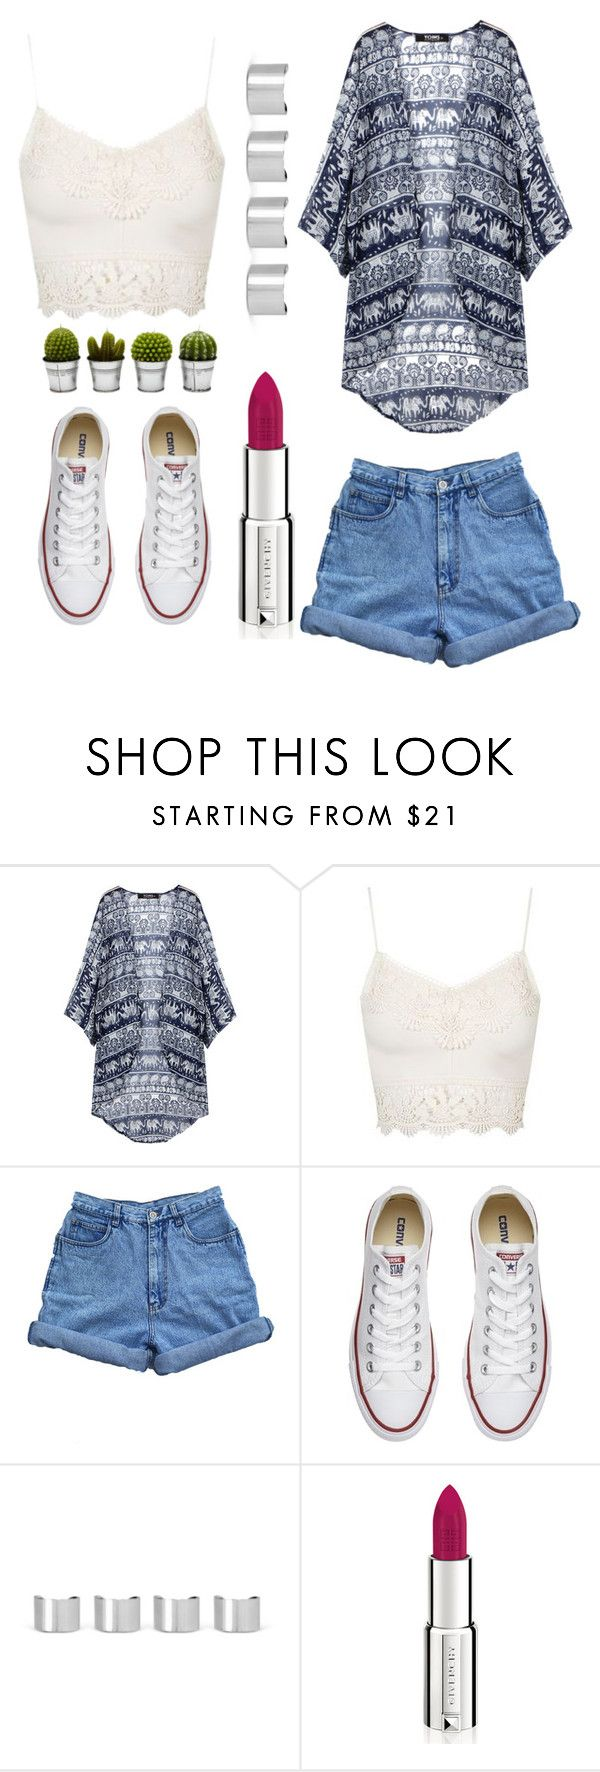 """""""Boho"""" by jaialee0304 ❤ liked on Polyvore featuring Topshop, Bill Blass, Converse, Maison Margiela, Givenchy and Billabong"""